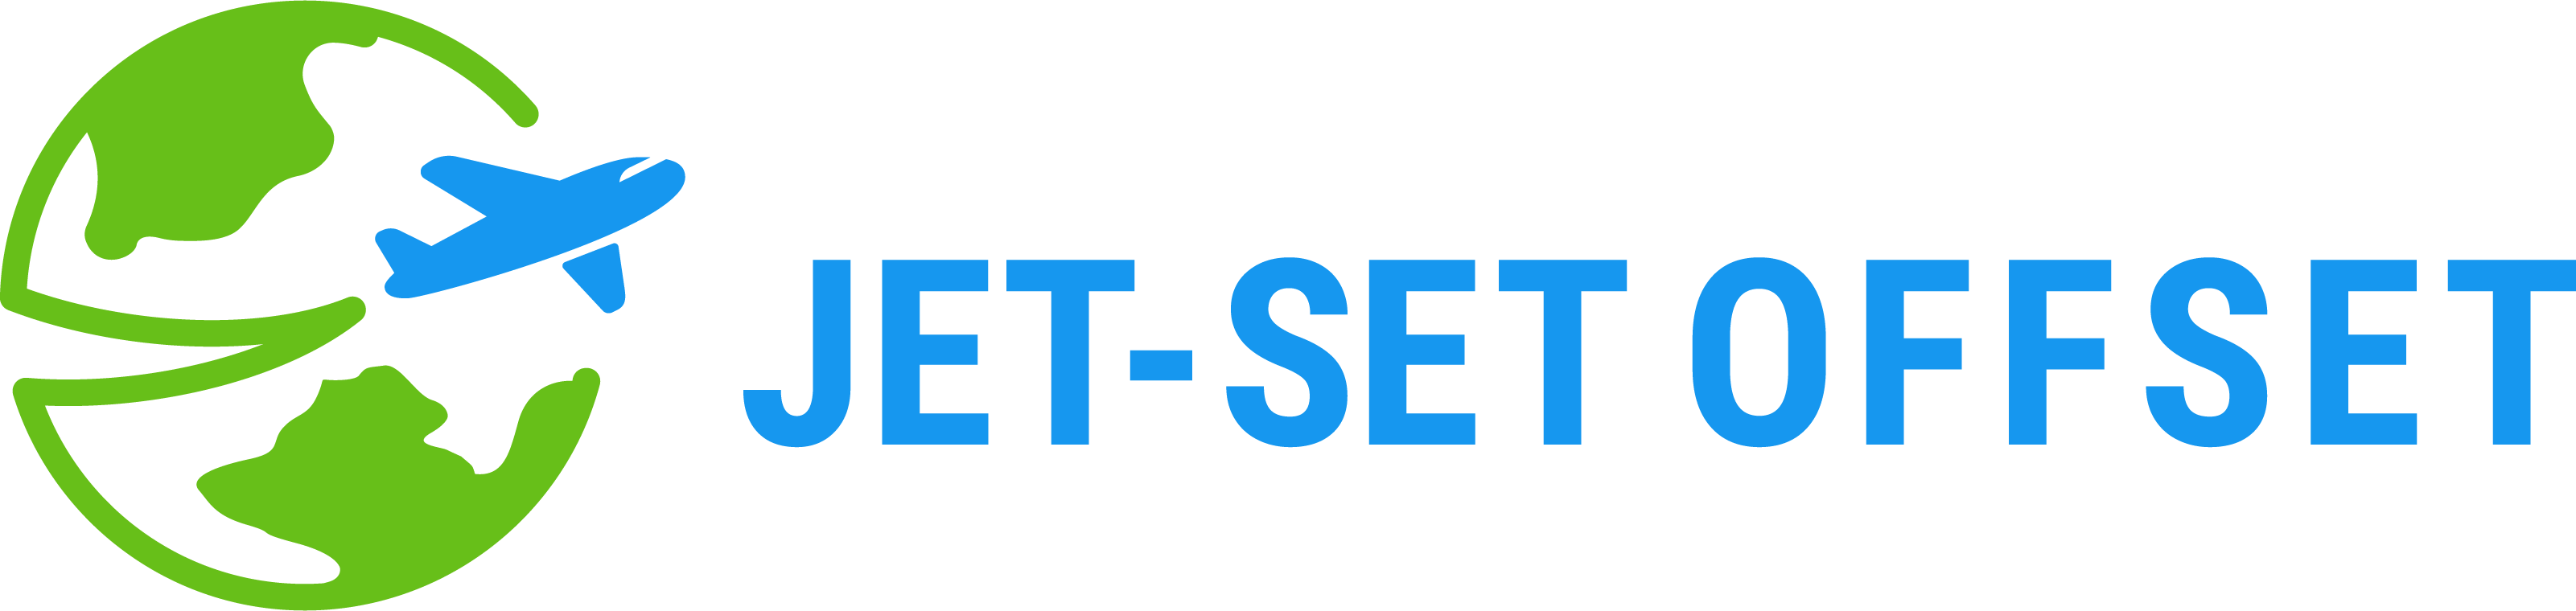 Jet-Set Offset blue logo